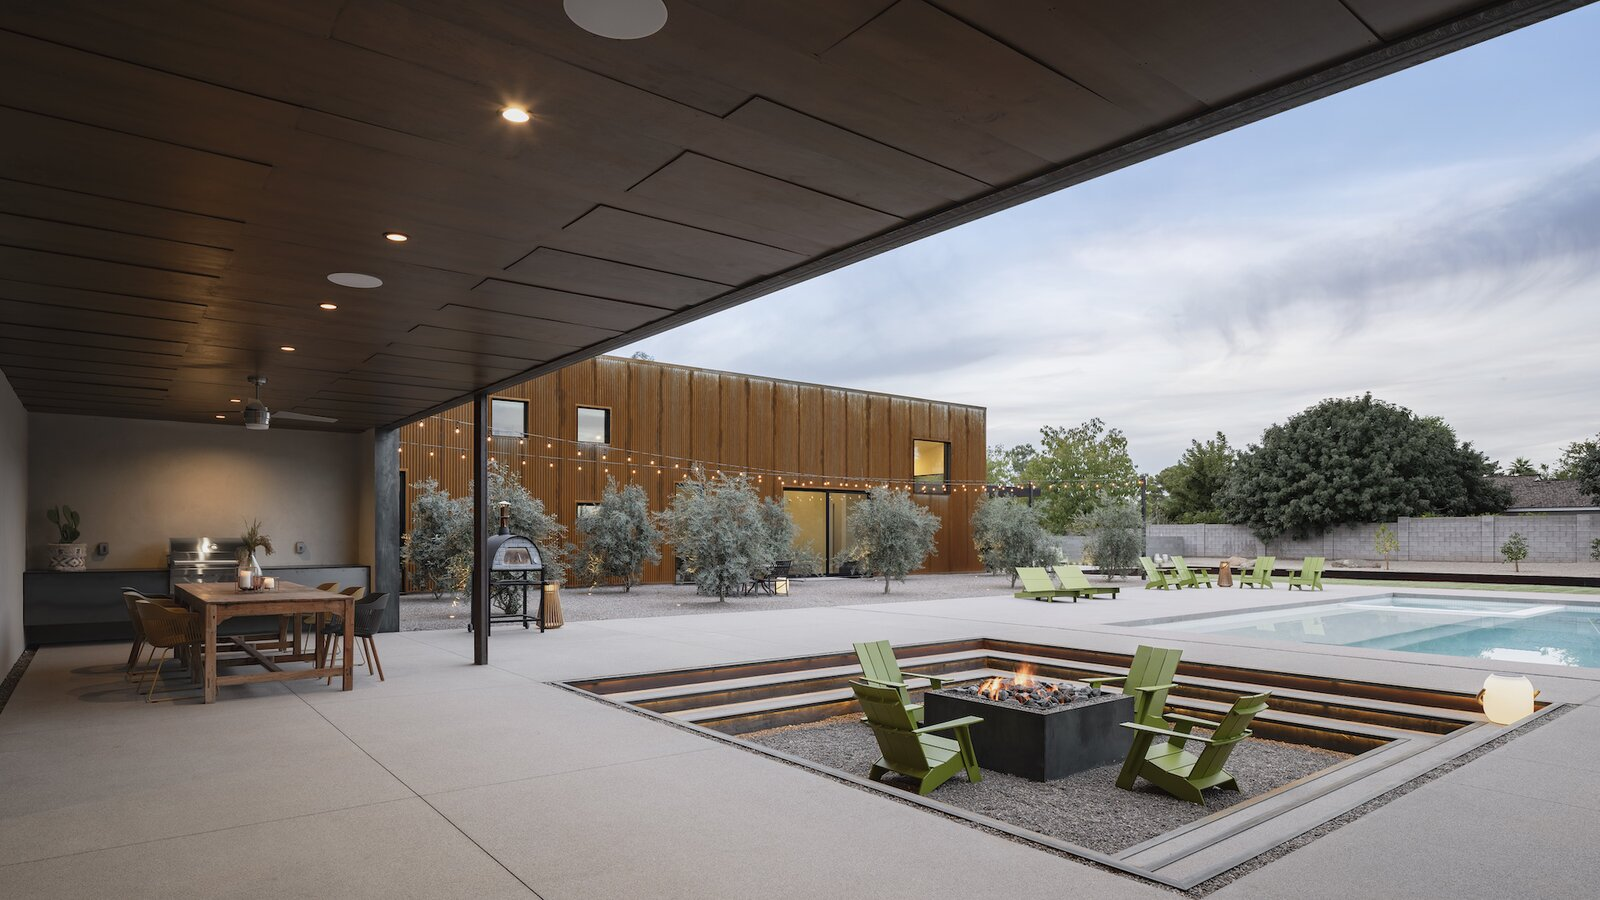 Courtyard and fire pit of Foo by The Ranch Mine.